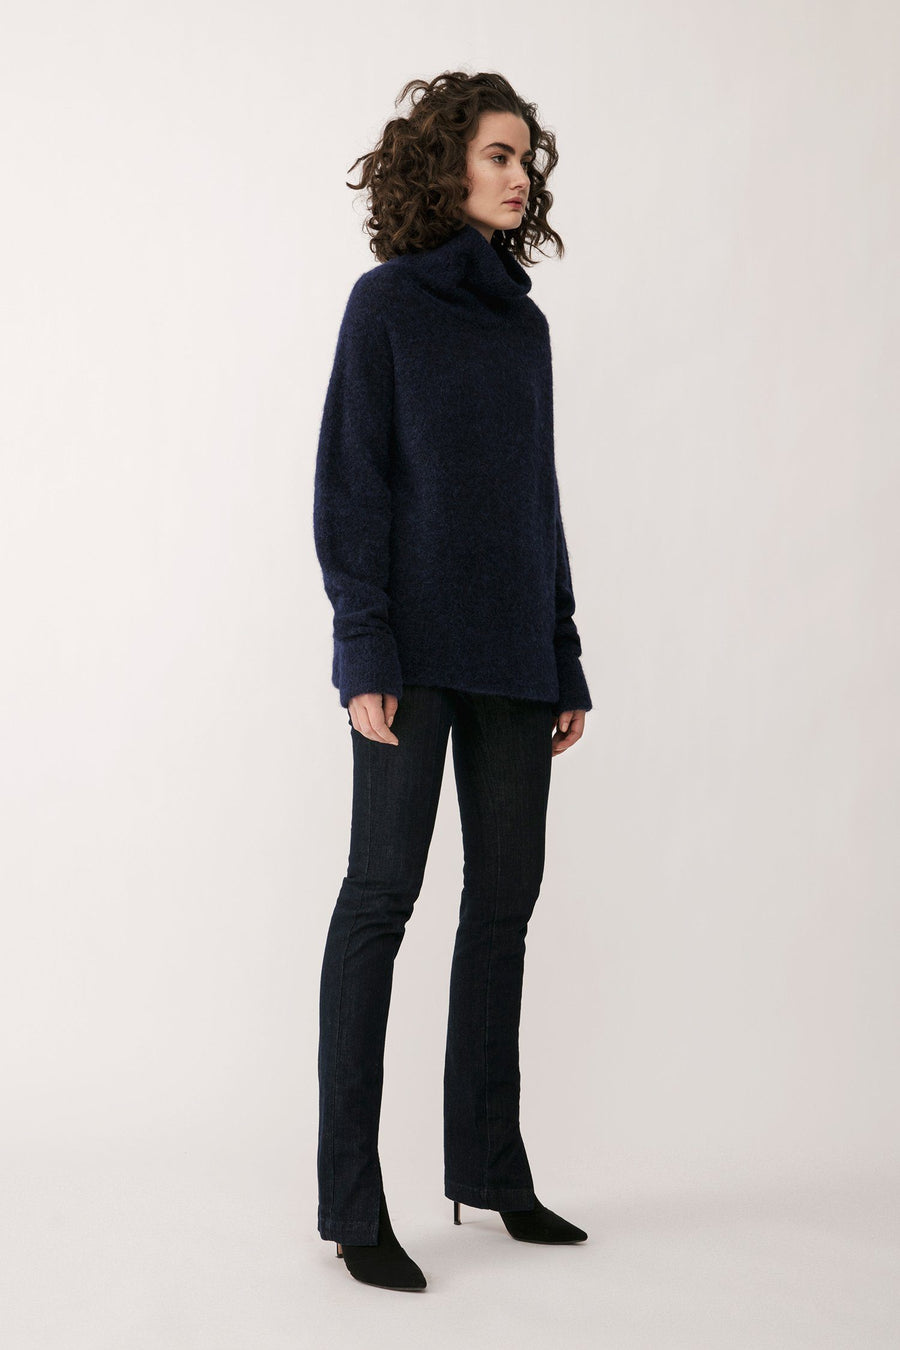 ELBE SWEATER - NAVY Sweater Stylein